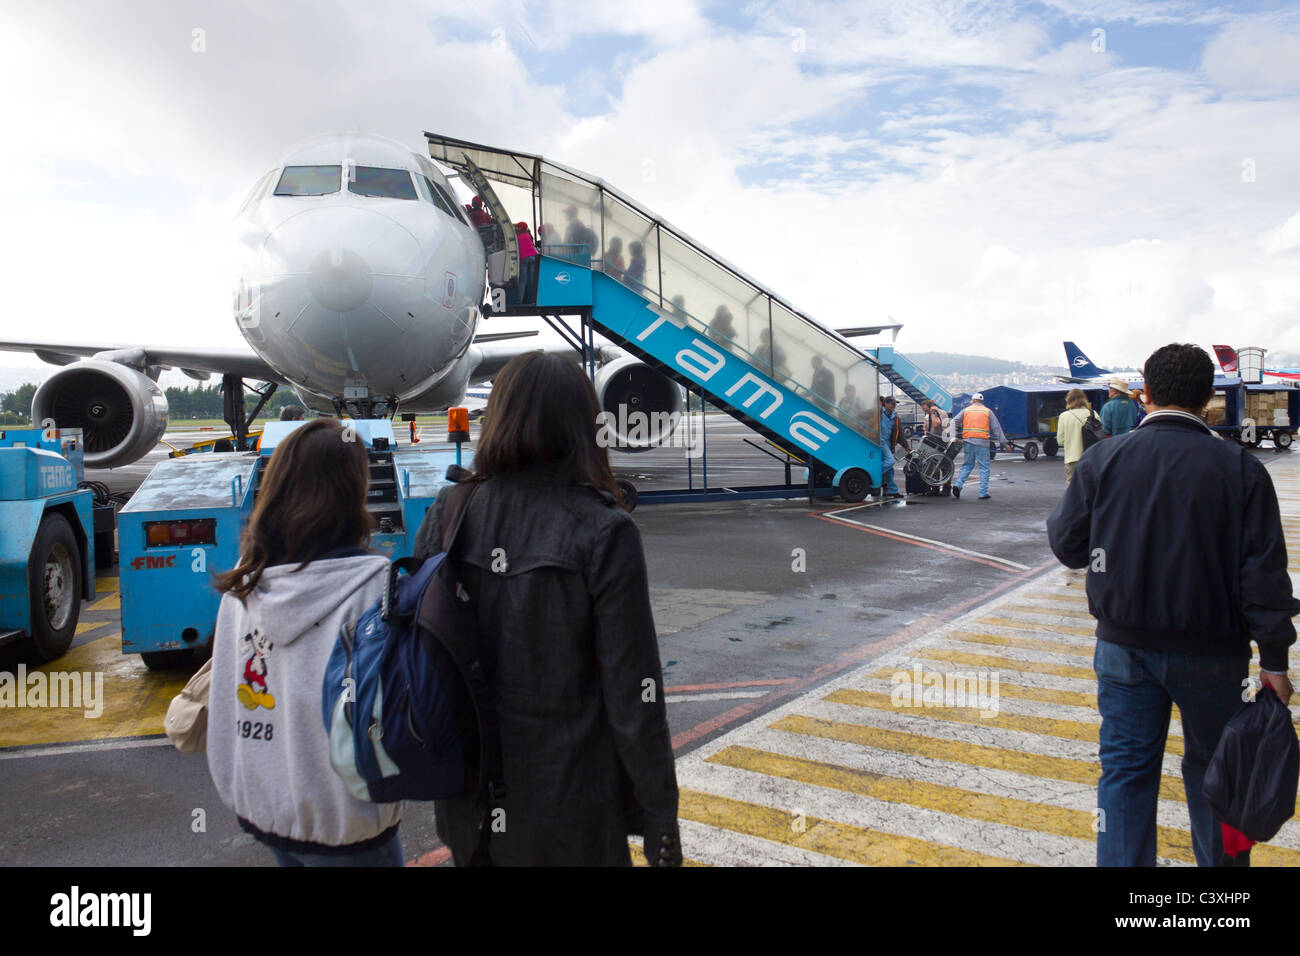 tourists departing on Tame flight at Quito  airport, for flight to Galapagos Islands, Ecuador - Stock Image